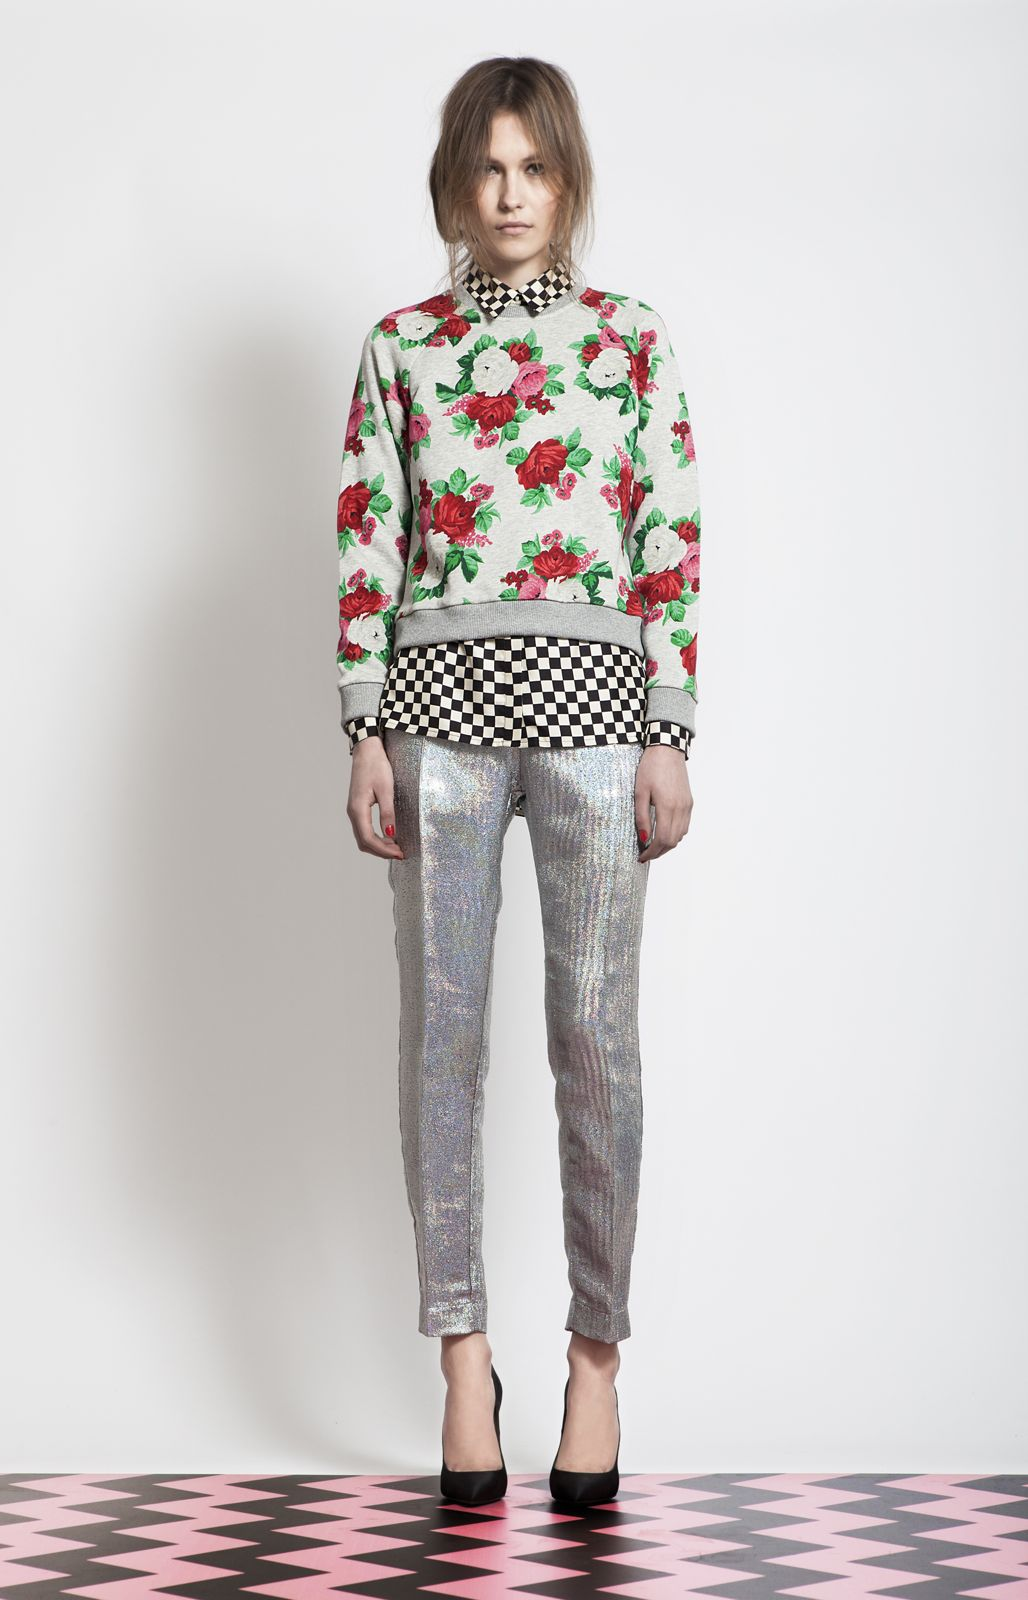 MSGM Woman Pre-Fall Winter 2012-2013 Collection